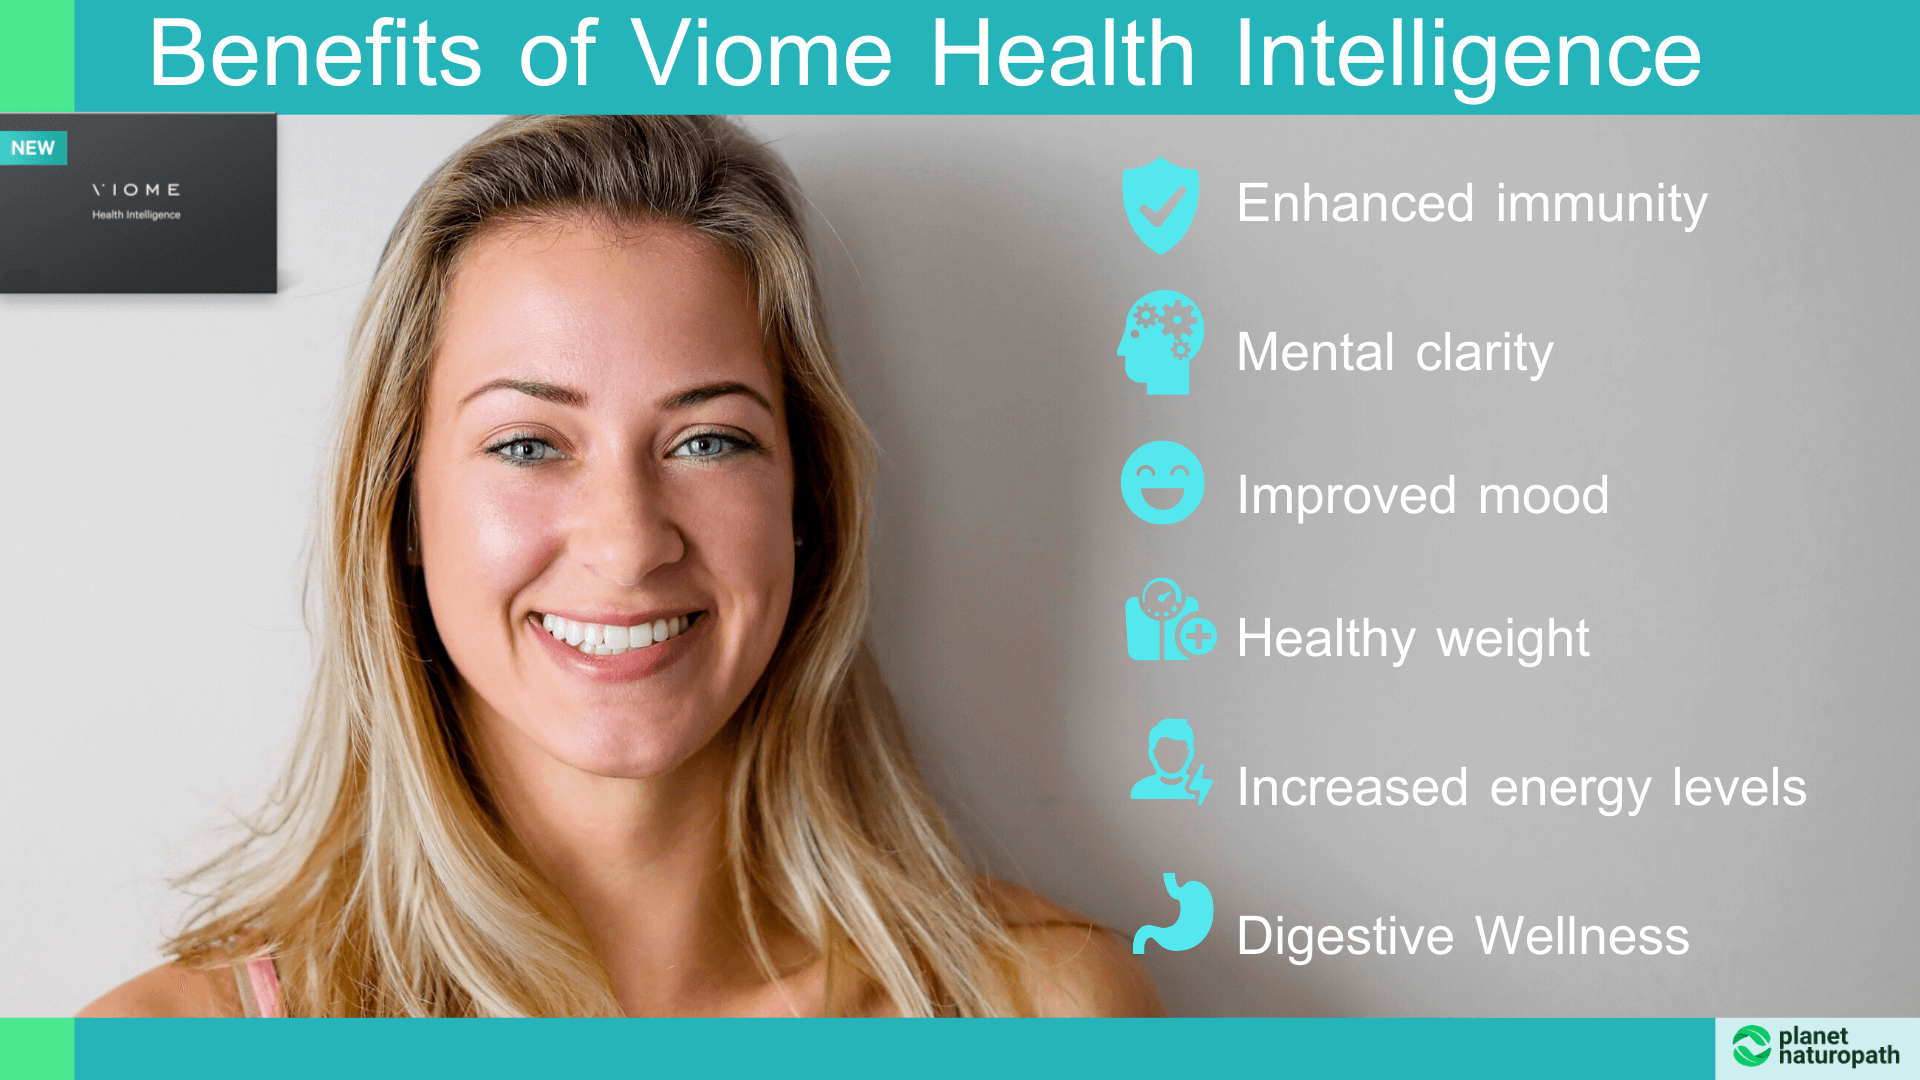 Benefits-of-Viome-Health-Intelligence